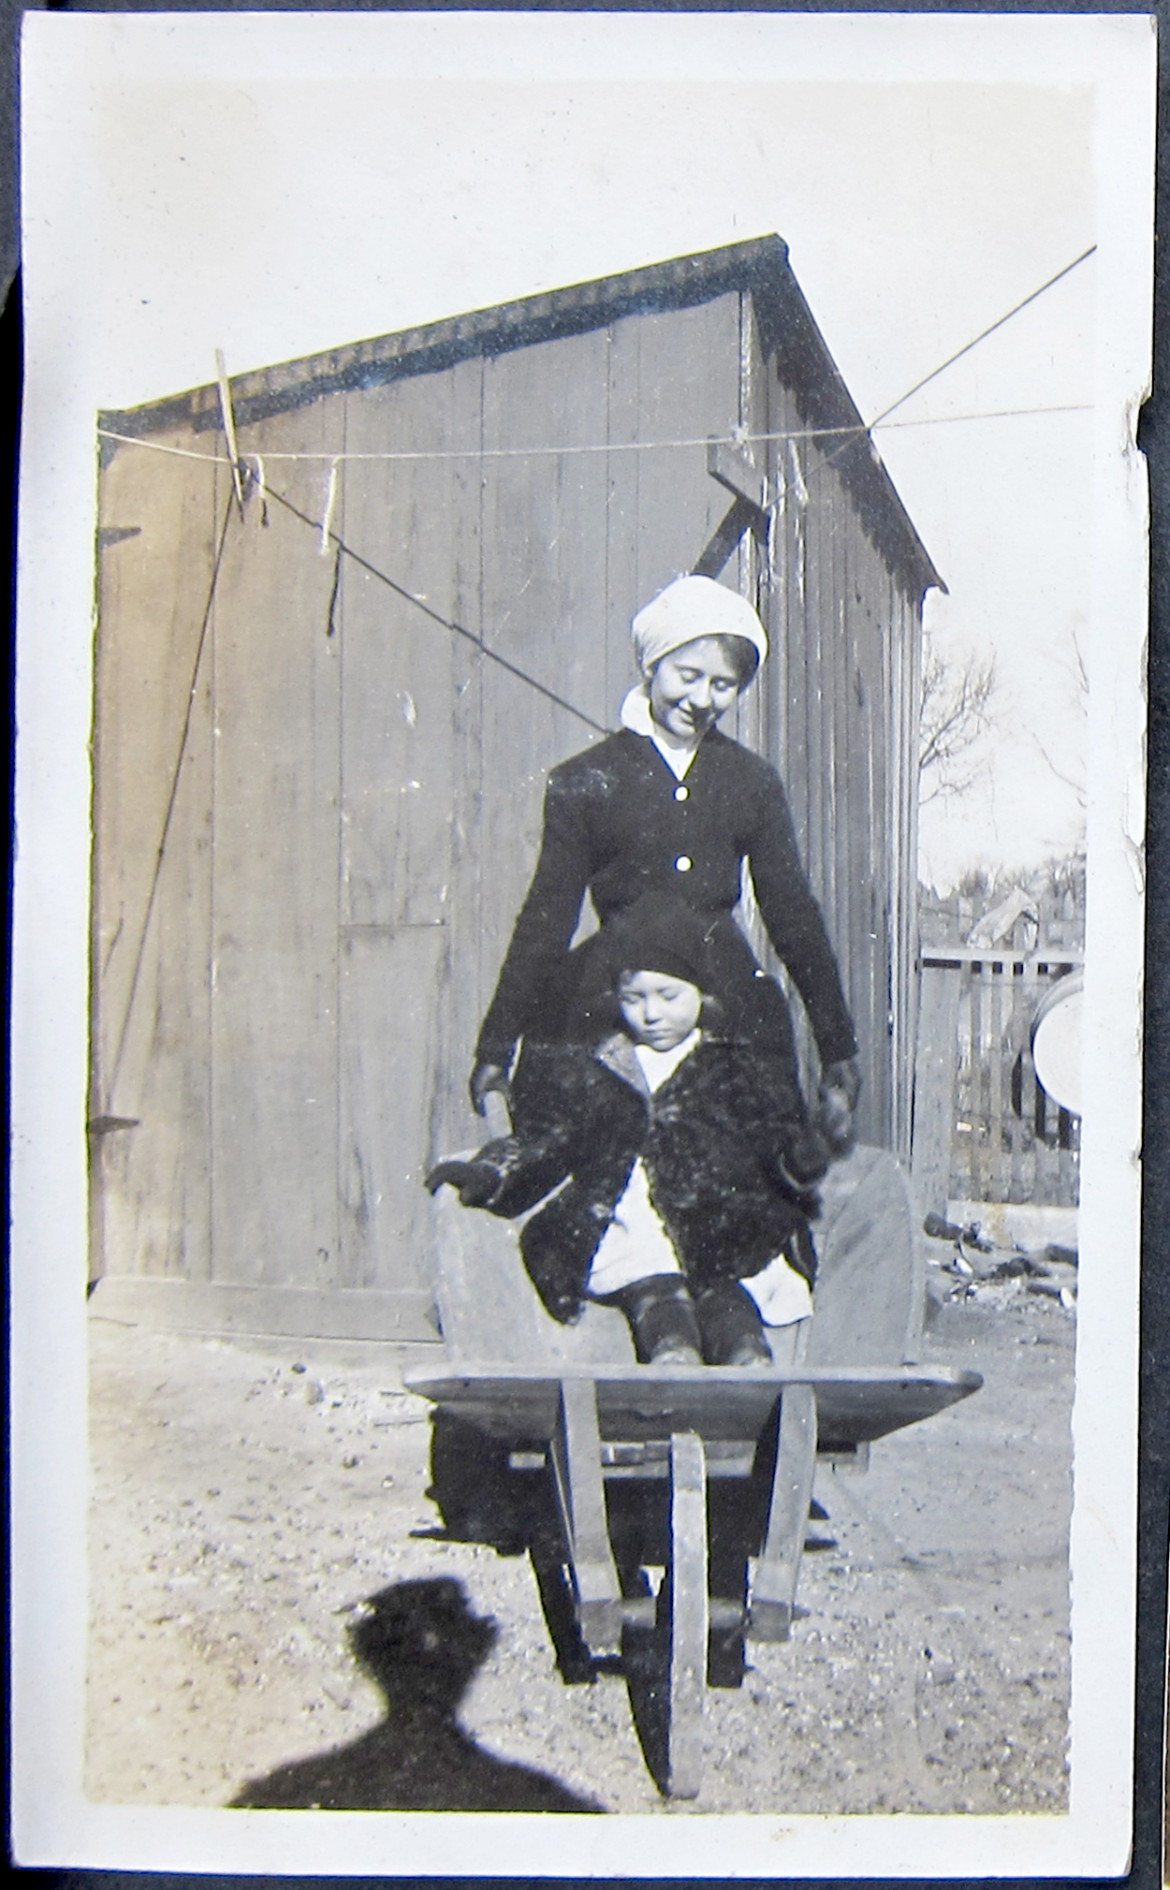 Amongst the Irwin collection are scenes from possibly two family farms.  These first four images are on the pages that contain photos from Talitha's pre marital life.  Here we have an unidentified woman wheelbarrowing an unidentified child.  the only thing I can say for sure is that is a wheel barrow.